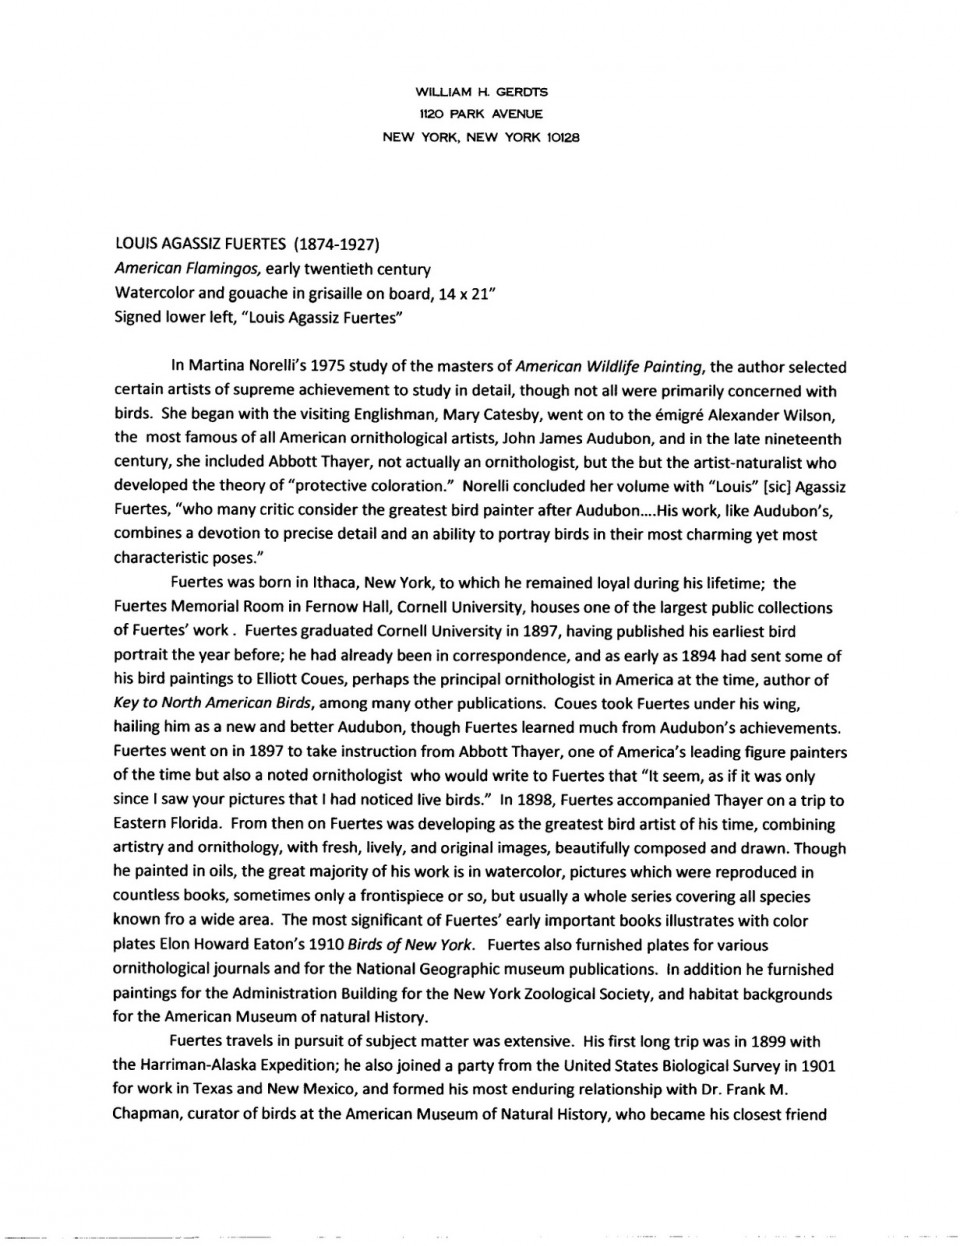 018 Osteopathic Medical School Essay Sample Example Awful 960